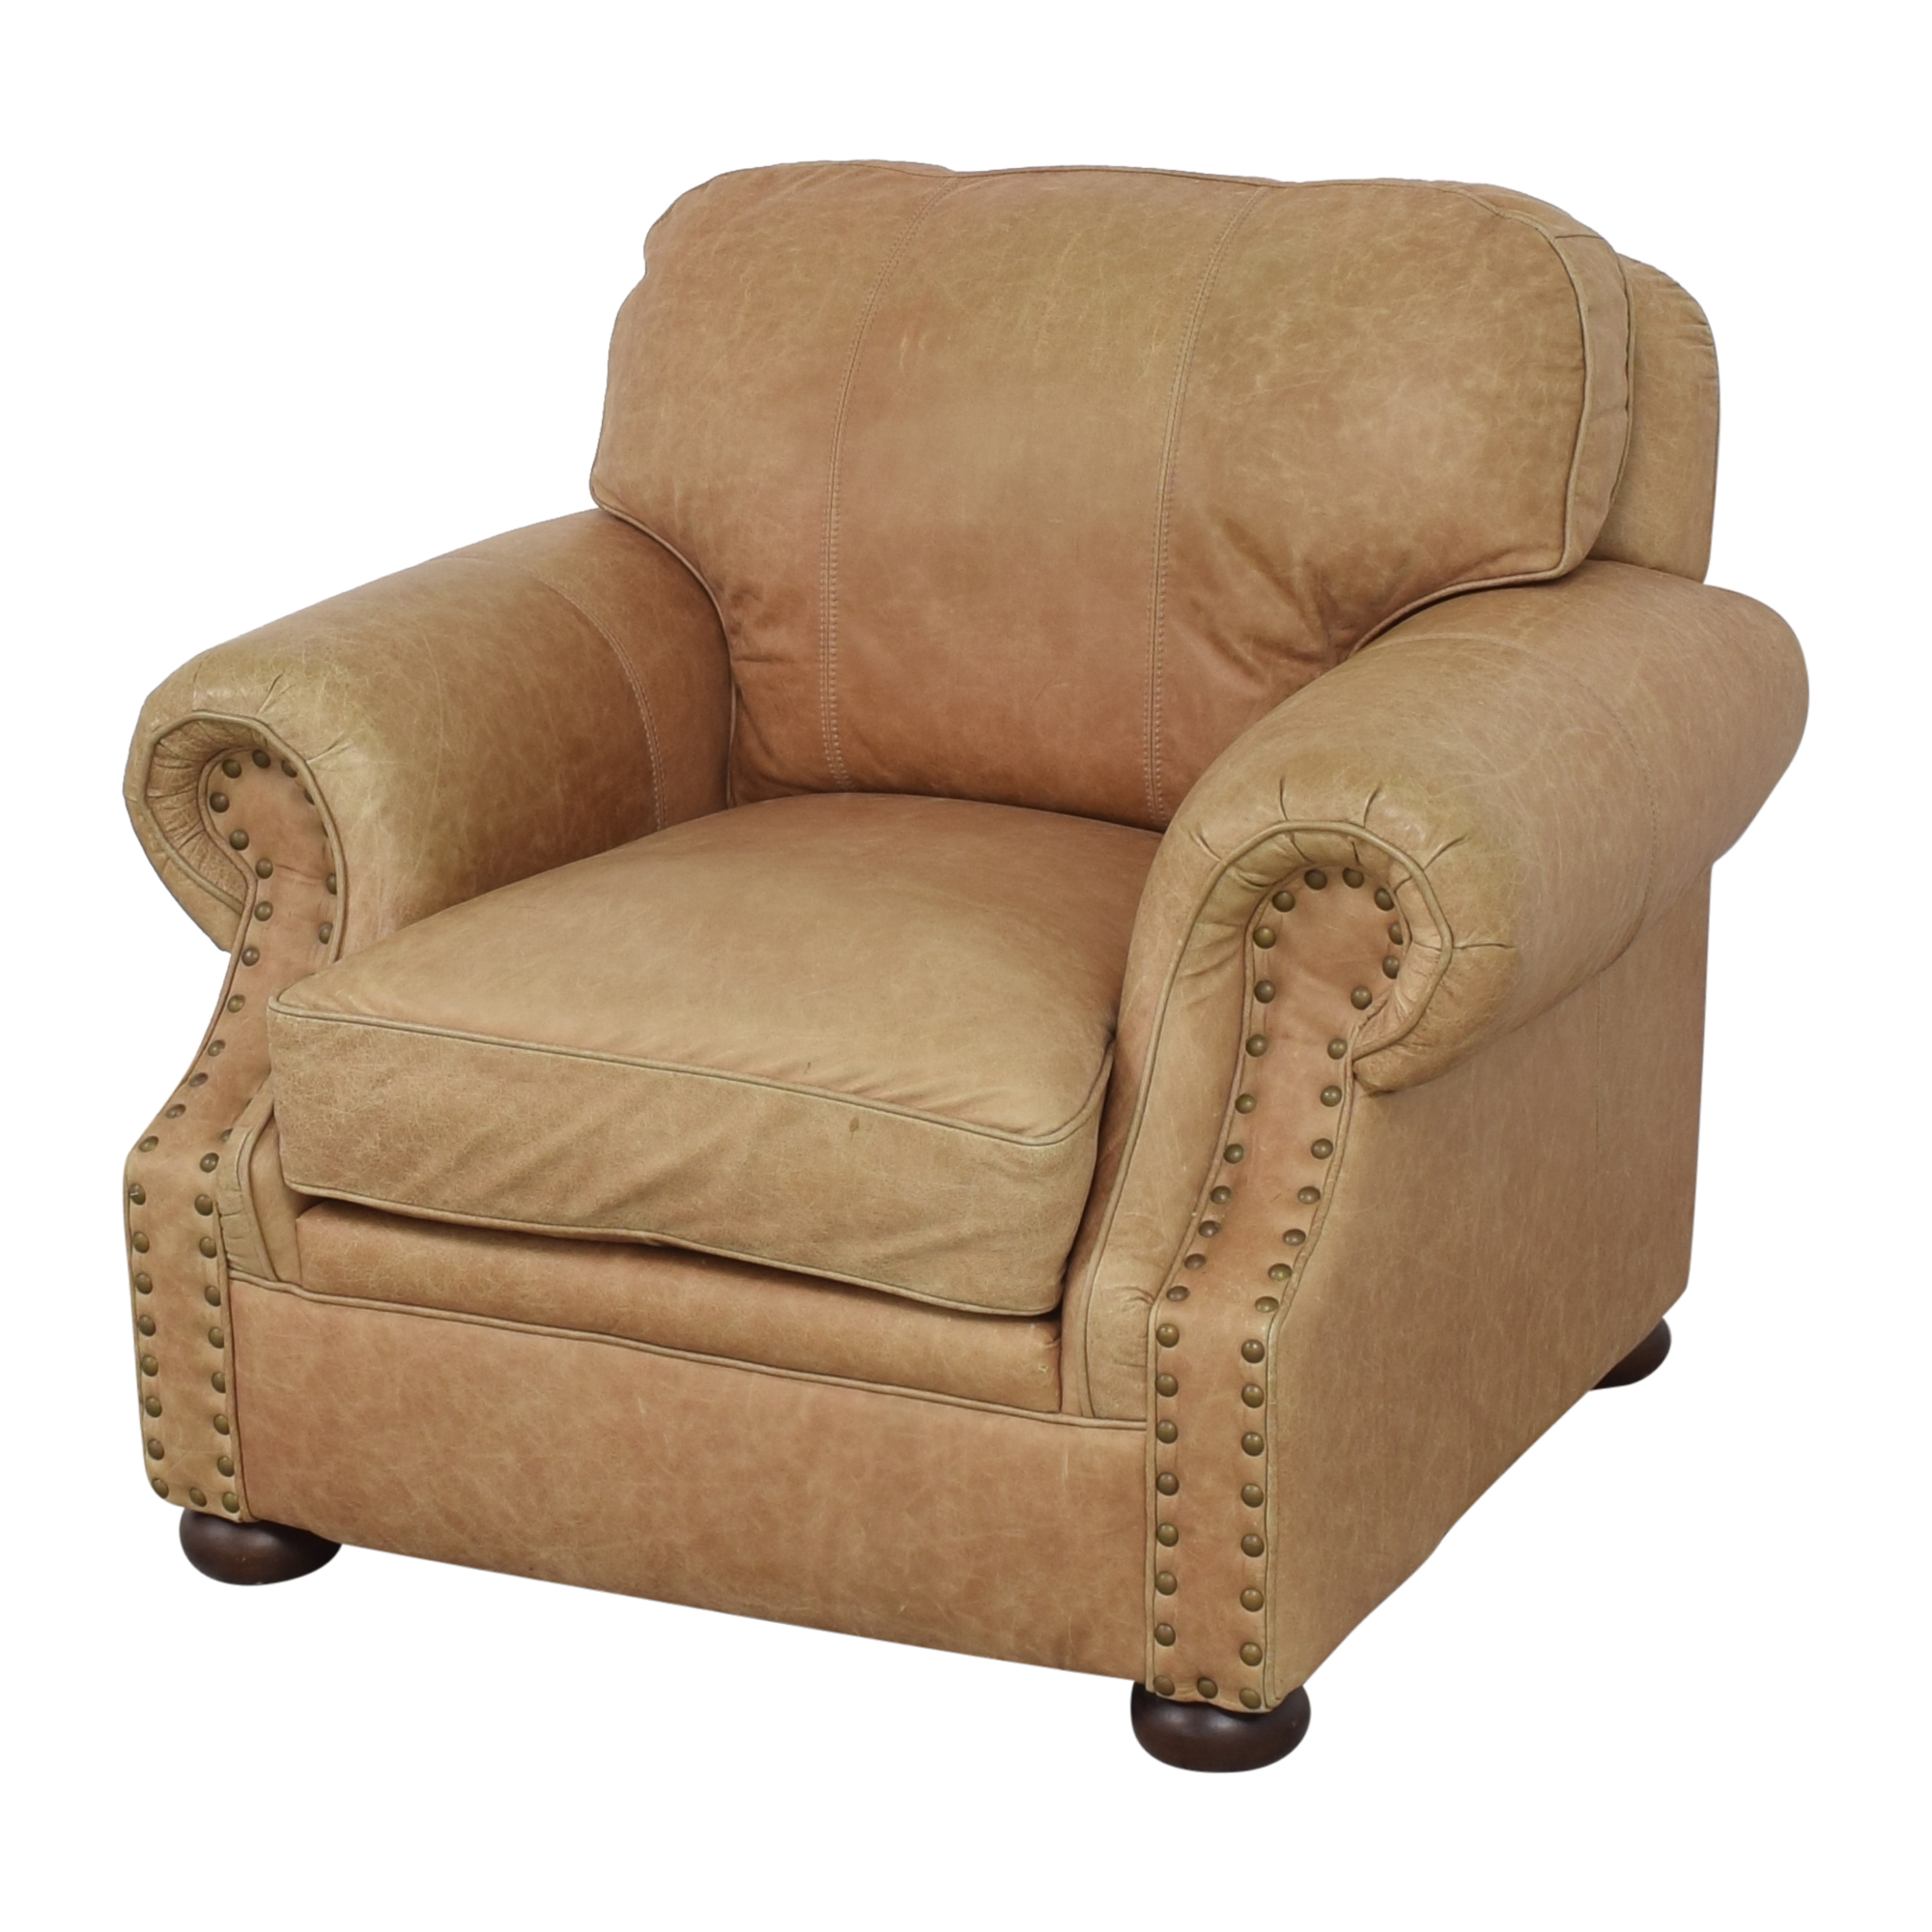 shop Ethan Allen Roll Arm Chair with Ottoman Ethan Allen Accent Chairs